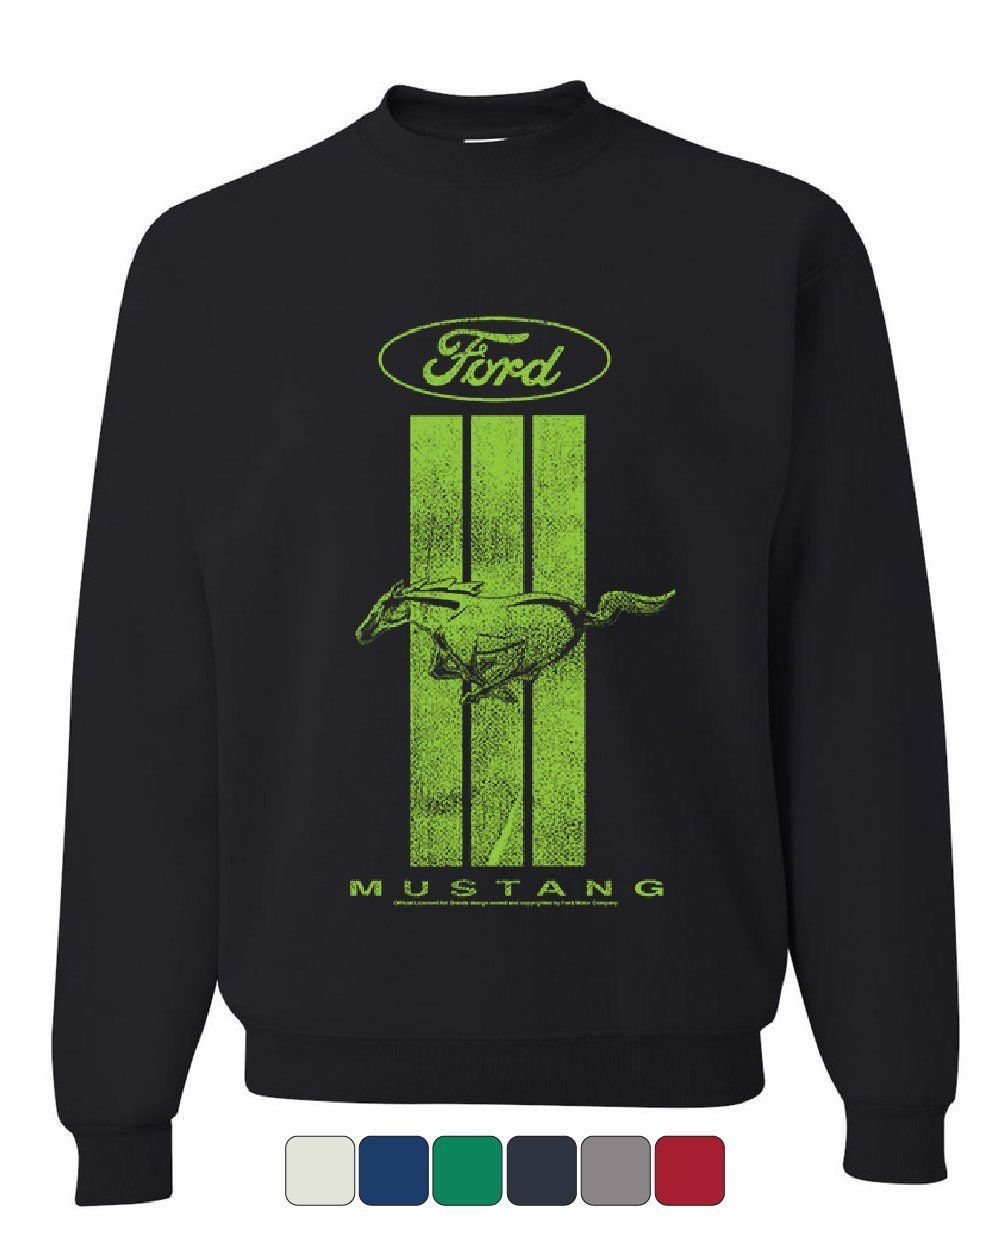 Primary image for Ford Mustang Green Stripe Sweatshirt Classic American Muscle Car